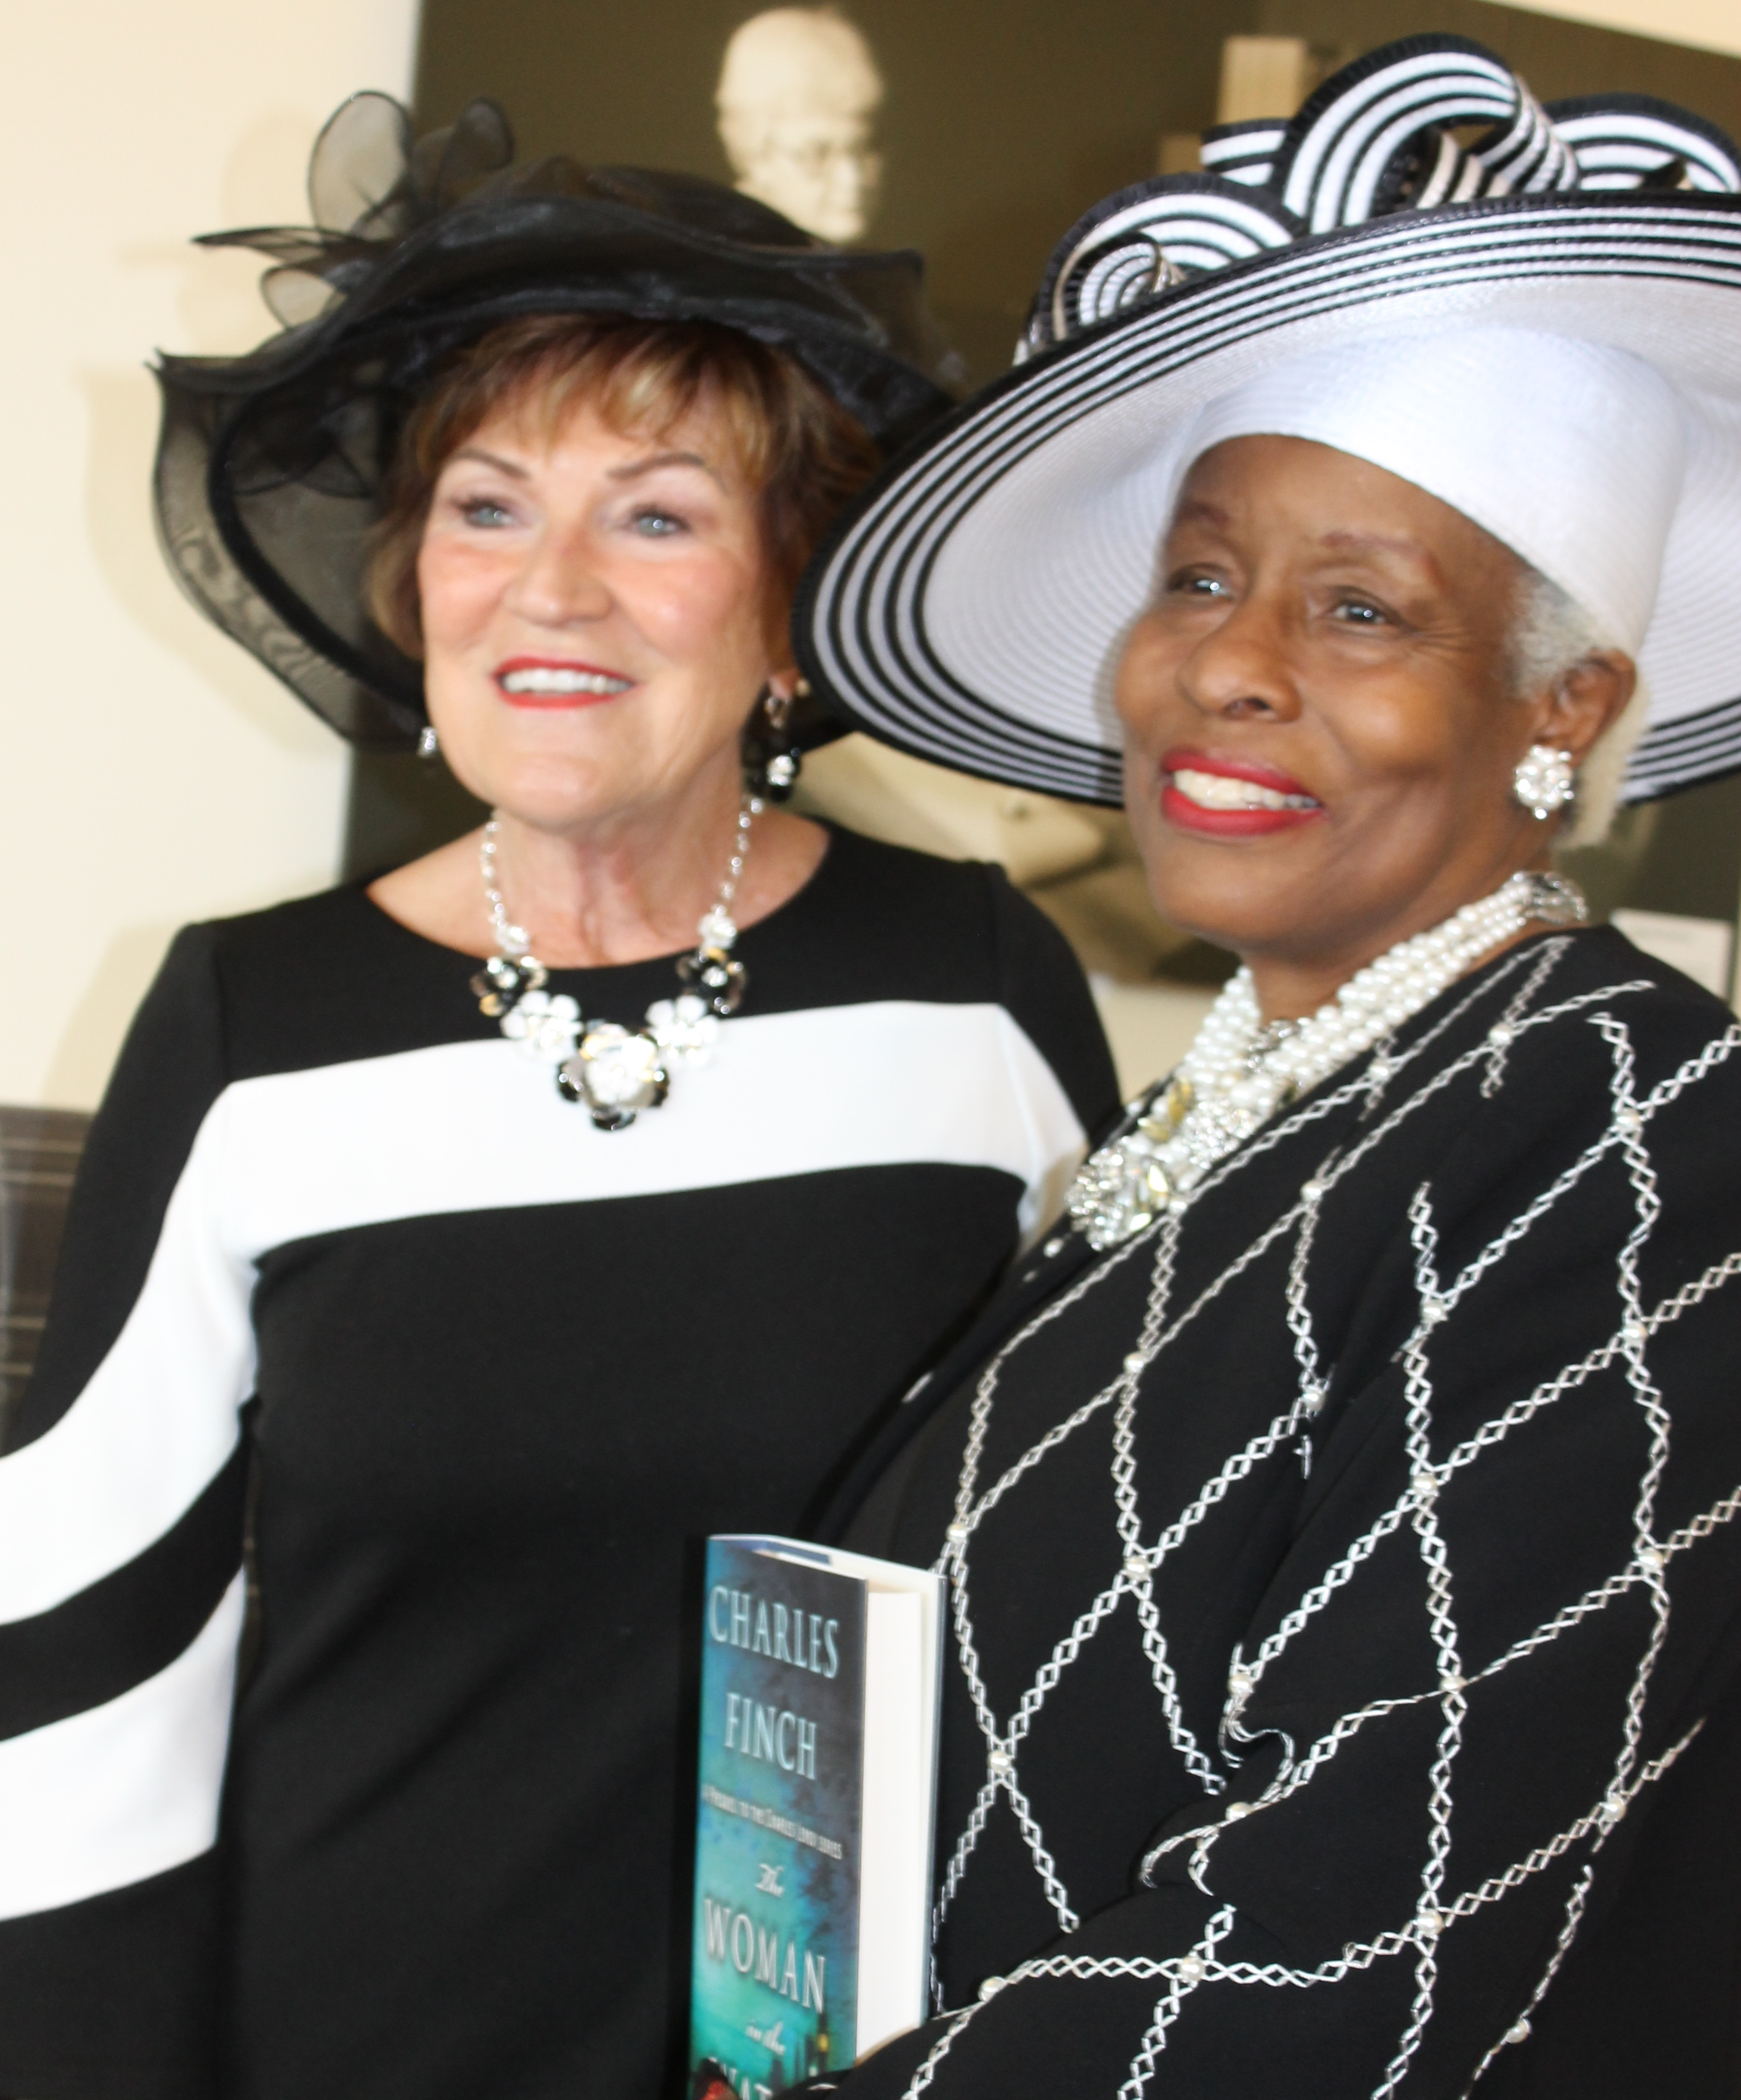 2019 04 13 authors brunch two lovely ladies in black and white